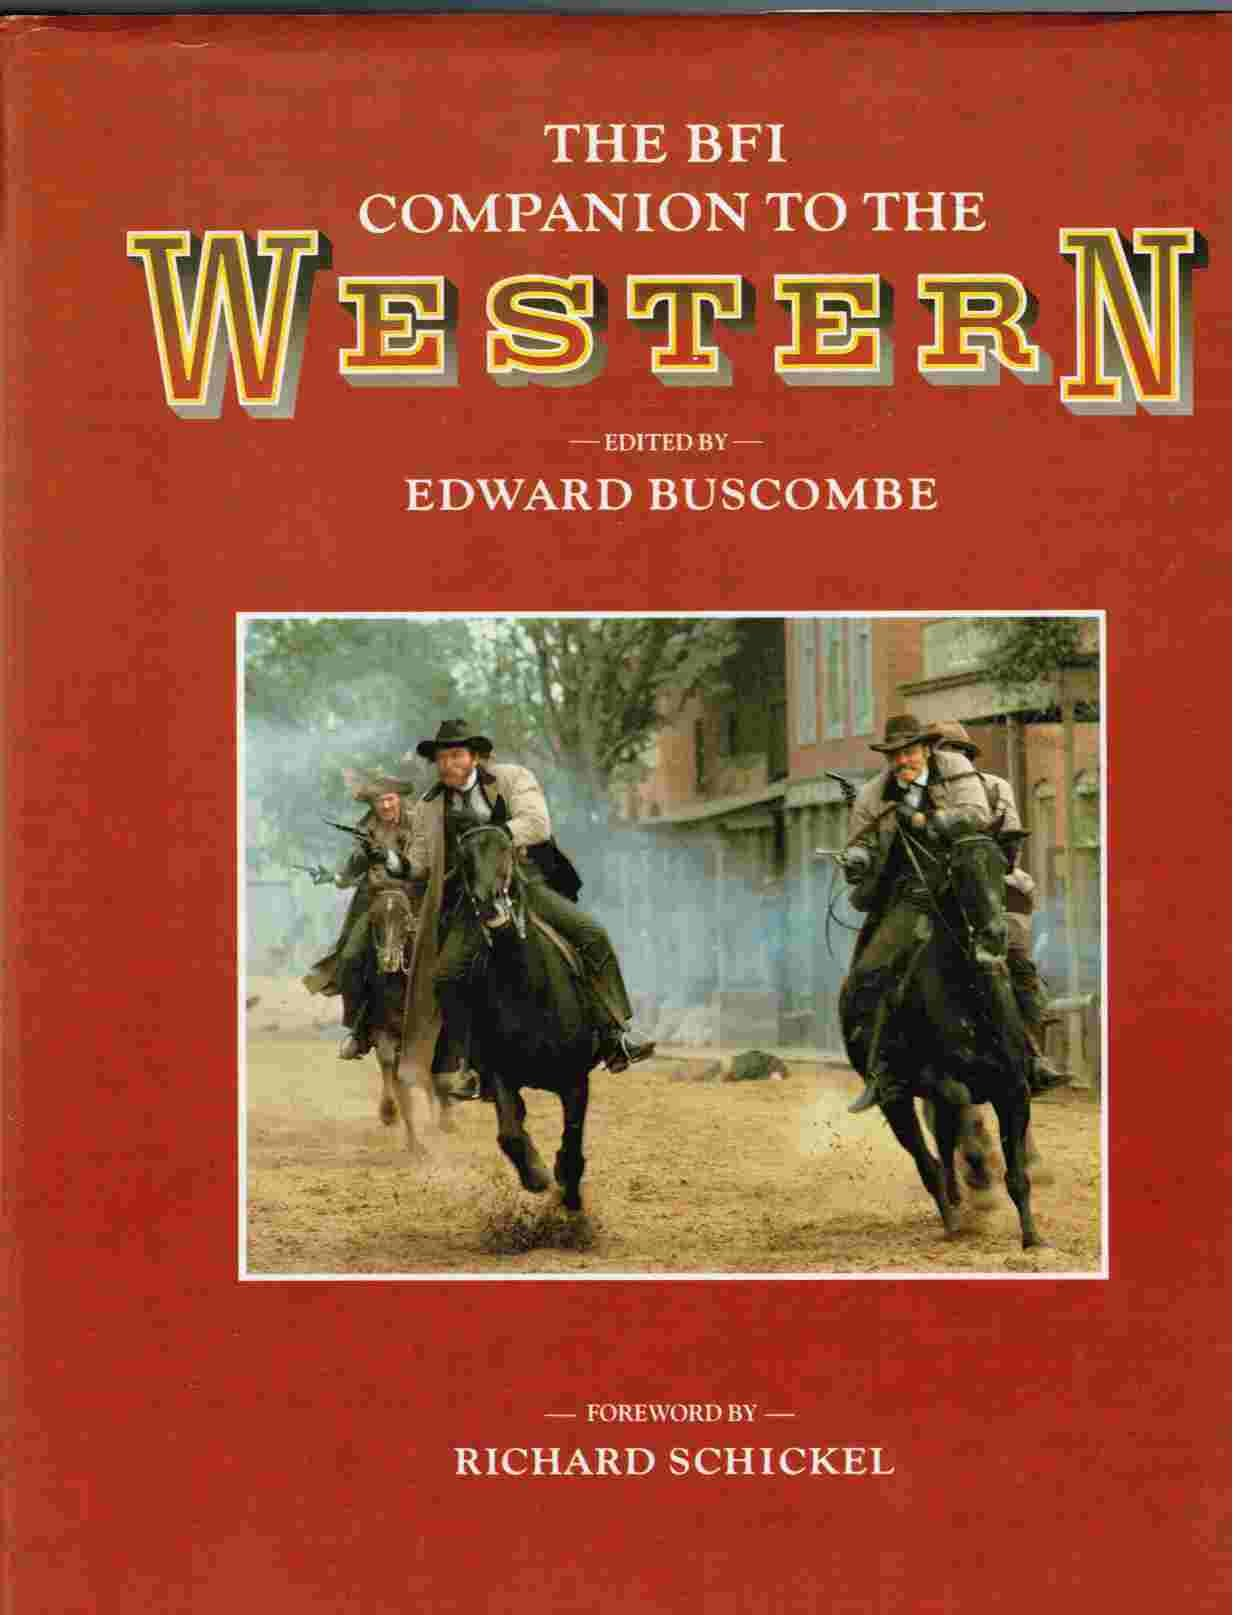 The B. F. I. COMPANION TO THE WESTERN, Buscombe